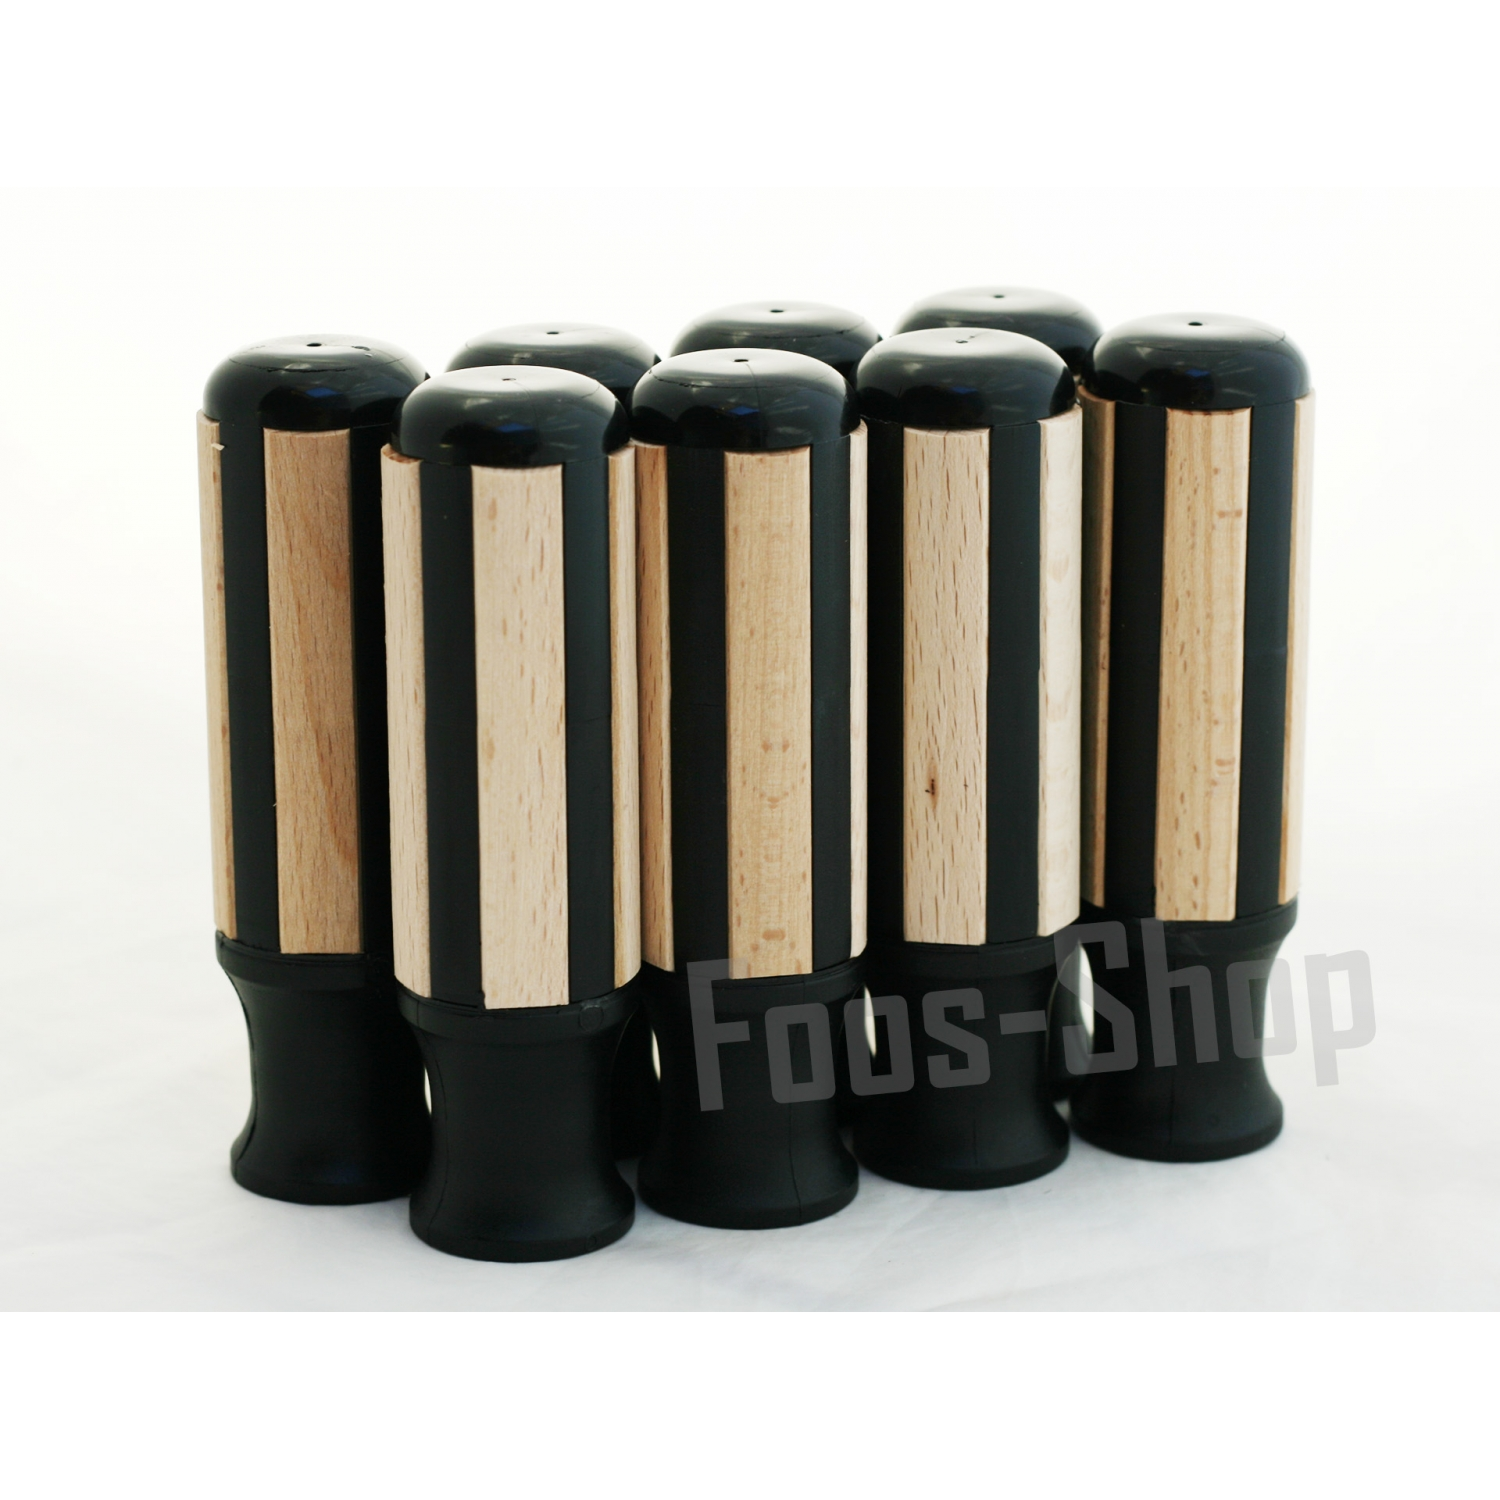 Garlando Wood Plastic Handles Set 8 Foos Shop